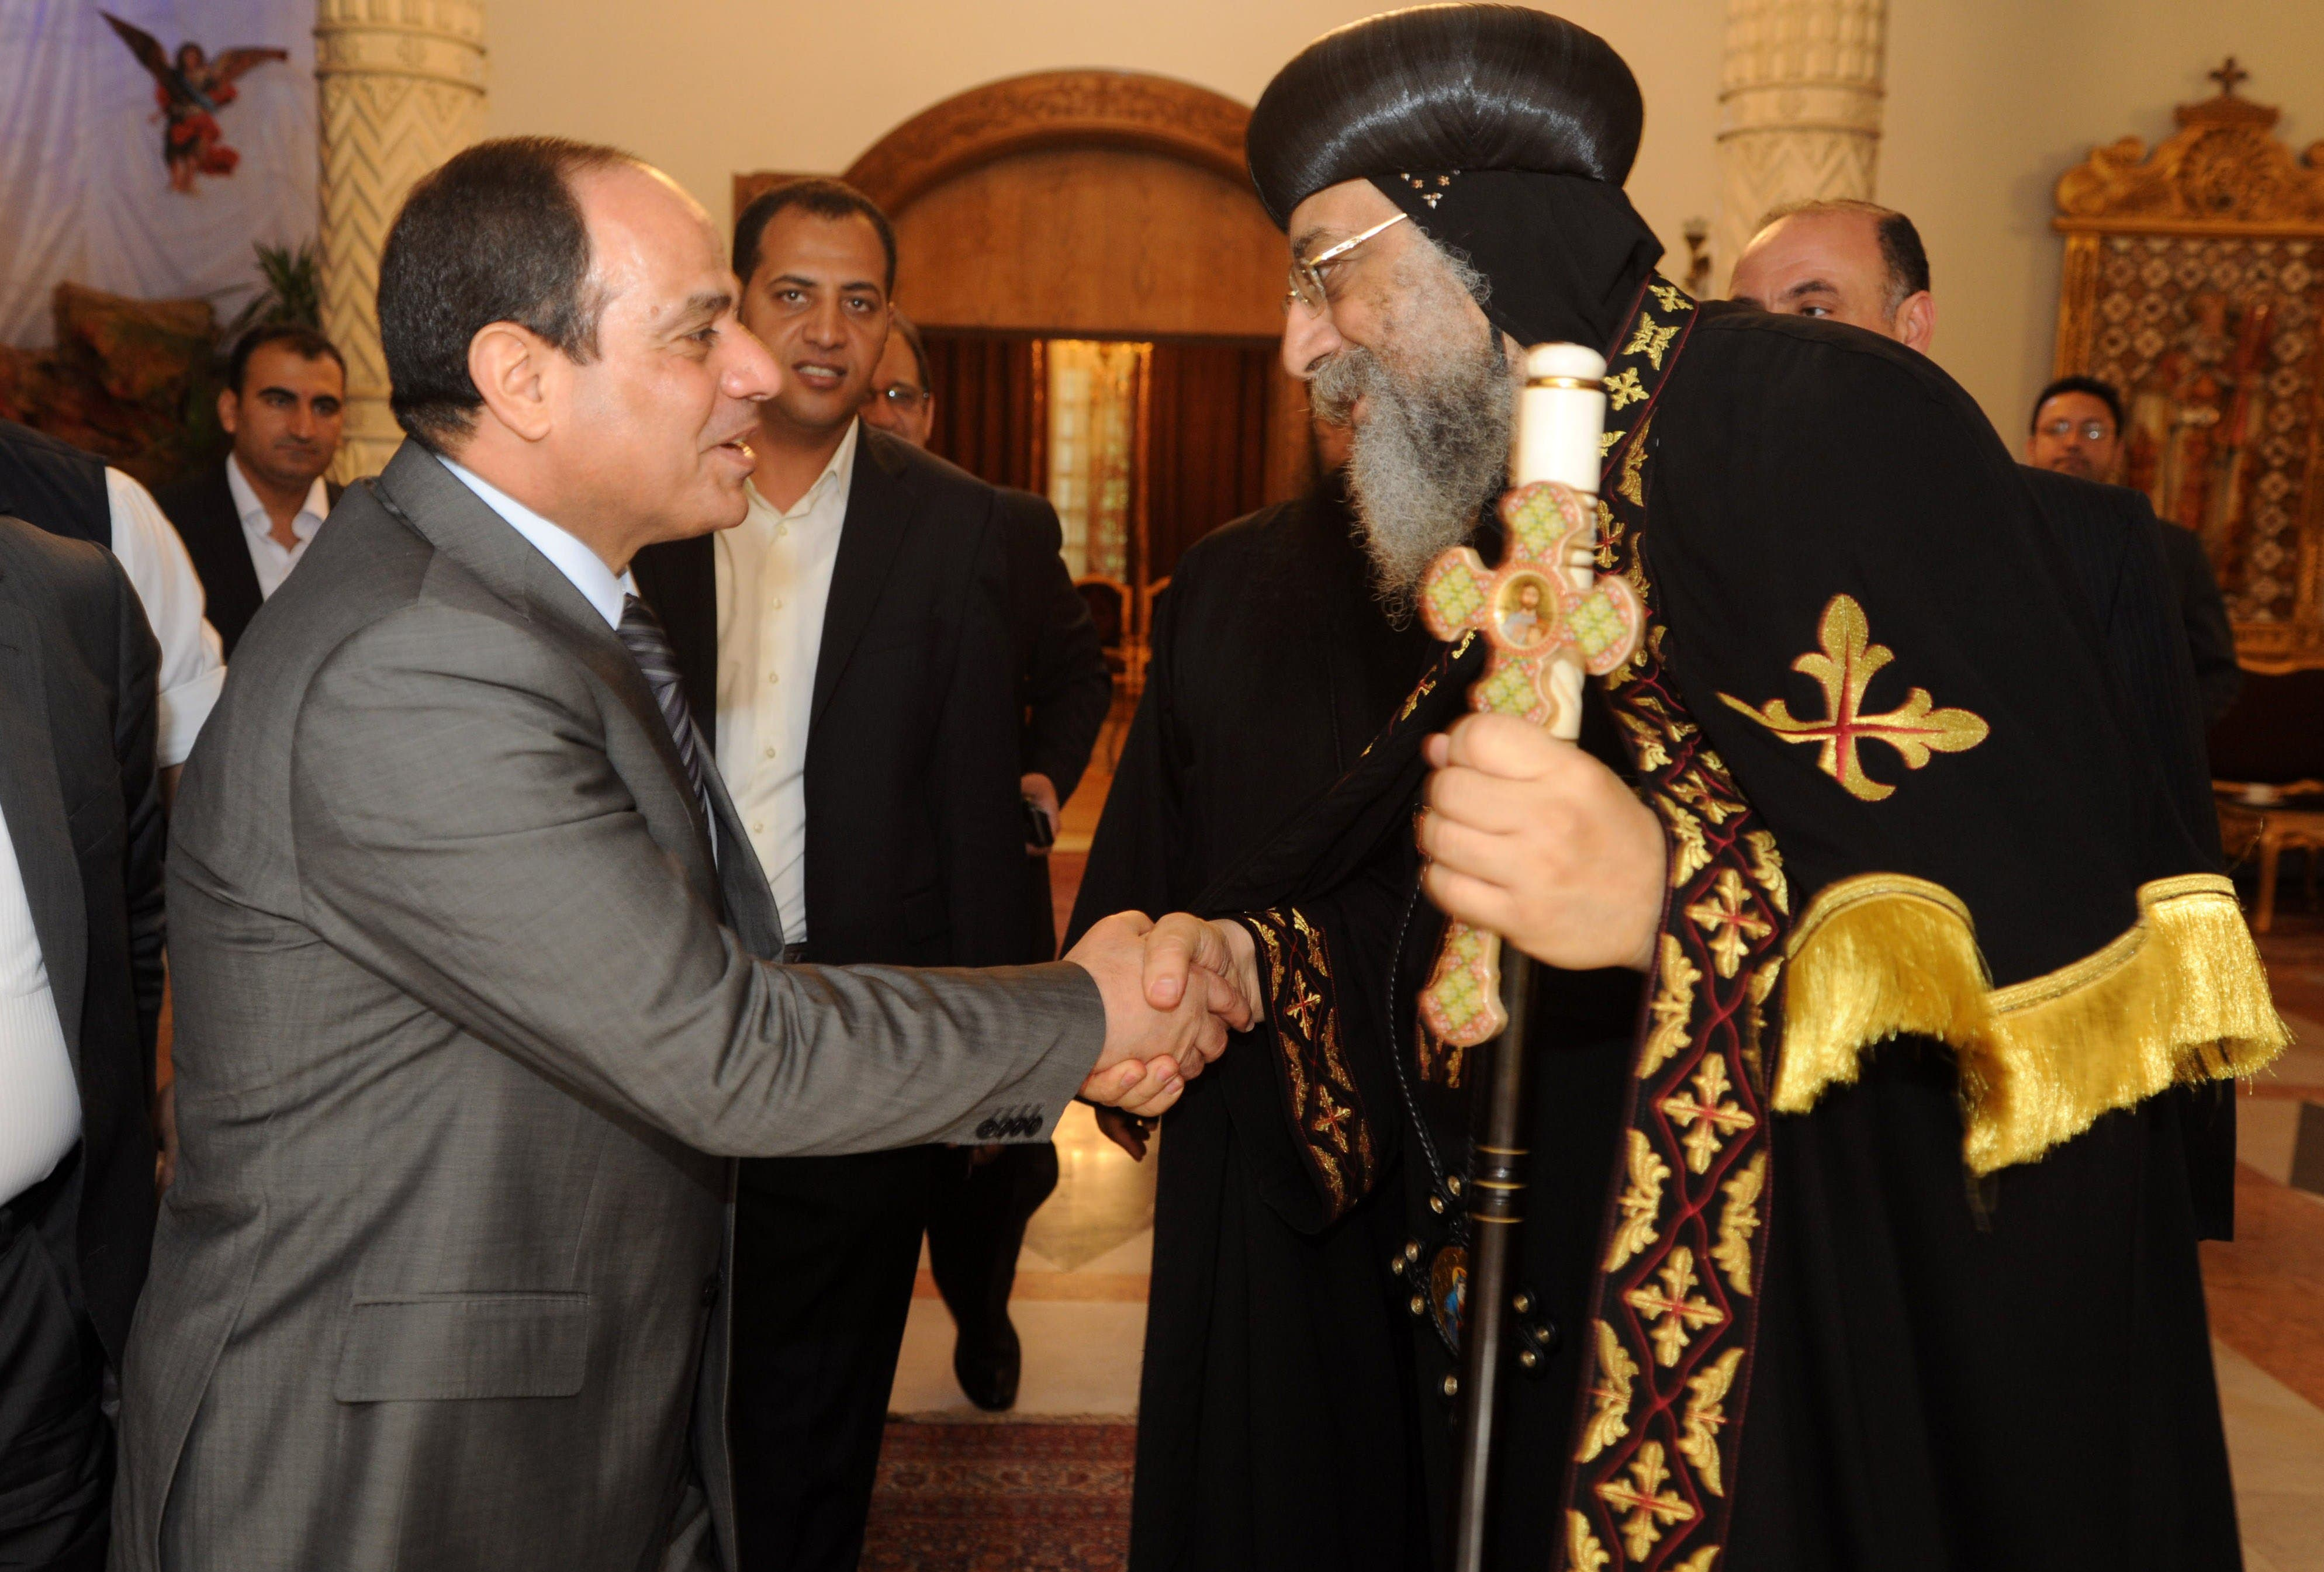 A handout picture released by the press office of Abbasiya Cathedral shows Egyptian former Defence Minister and armed forces chief General Abdul Fatah al-Sisi (L) shaking hands with Pope Tawadros II, pope of Egypt's Coptic Orthodox Church on April 19, 2014 during a visit at Cathedral of Abbasiya in Cairo. (AFP)